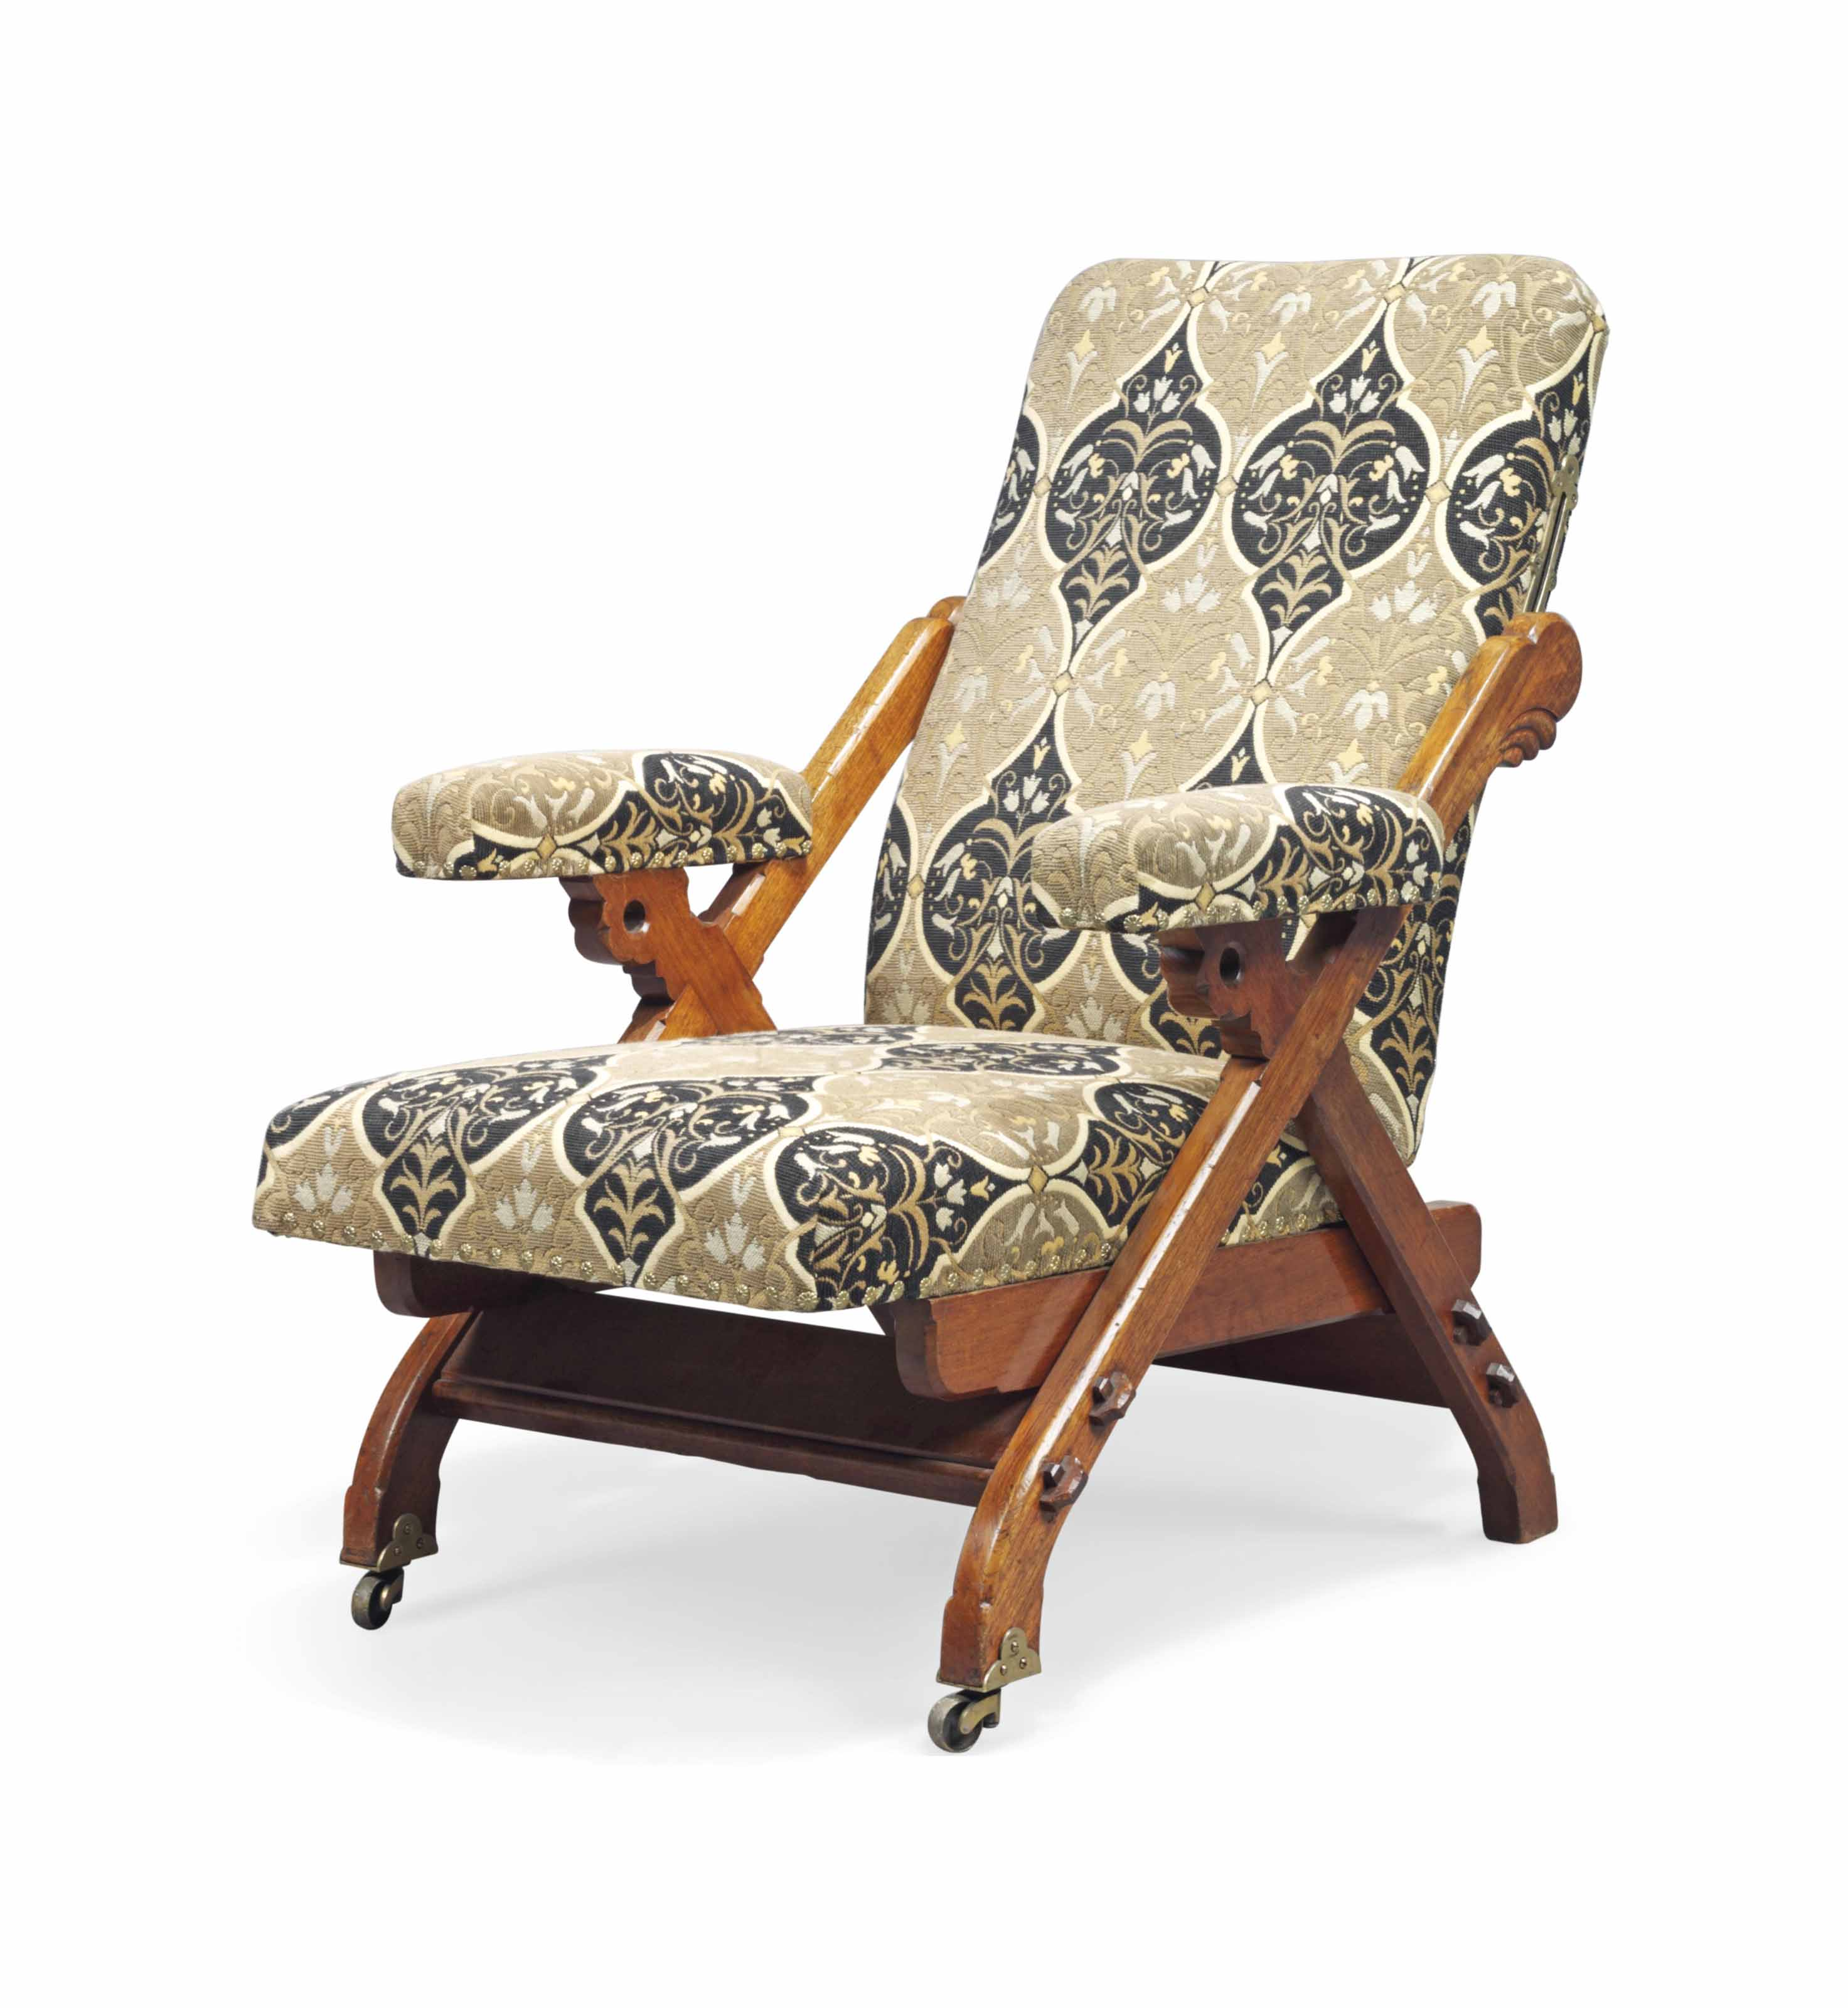 A CHARLES BEVAN (FL.1865-1882) WALNUT AND UPHOLSTERED RECLINING ARMCHAIR